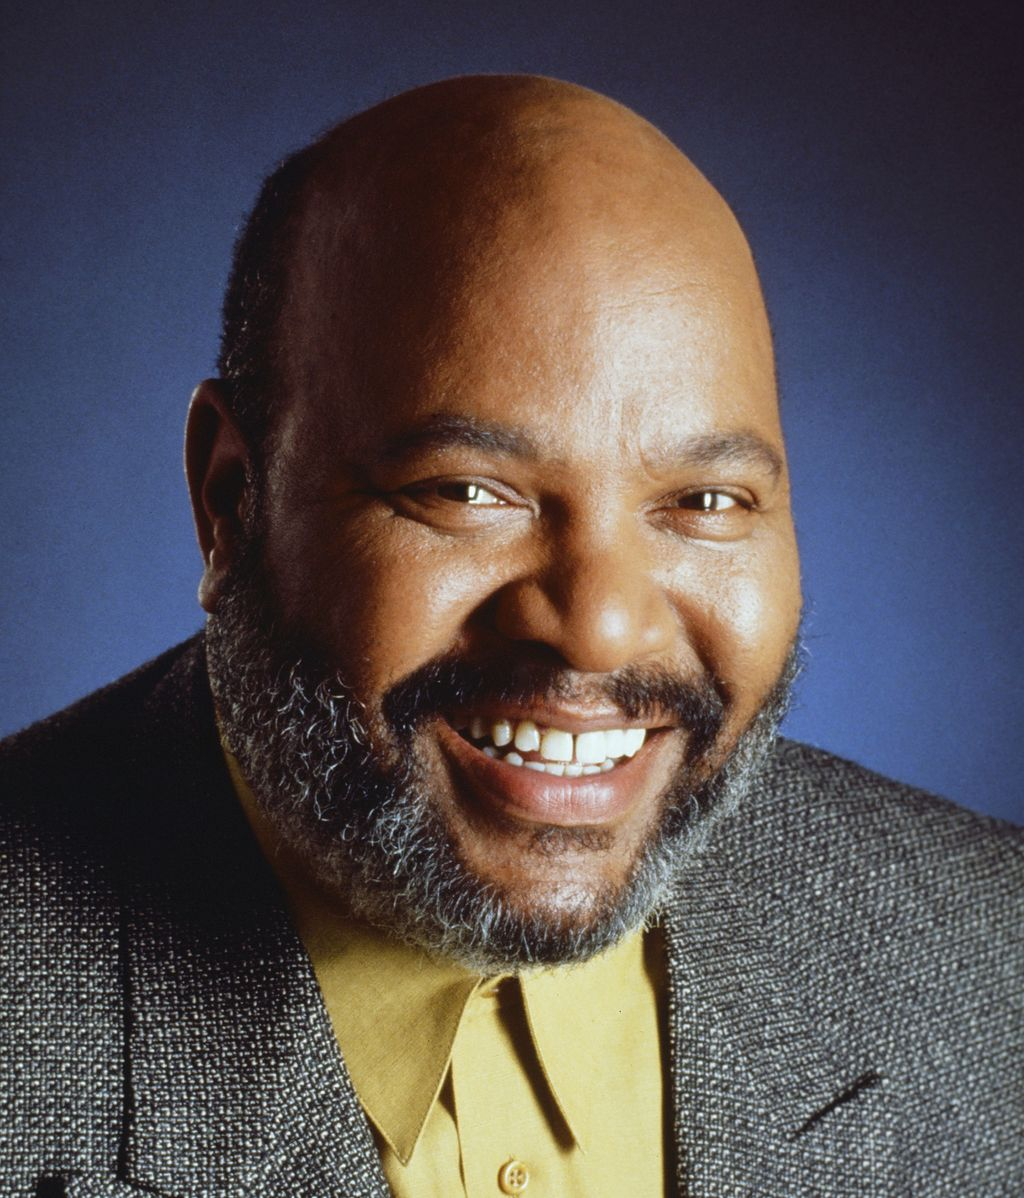 Muere el actor James Avery